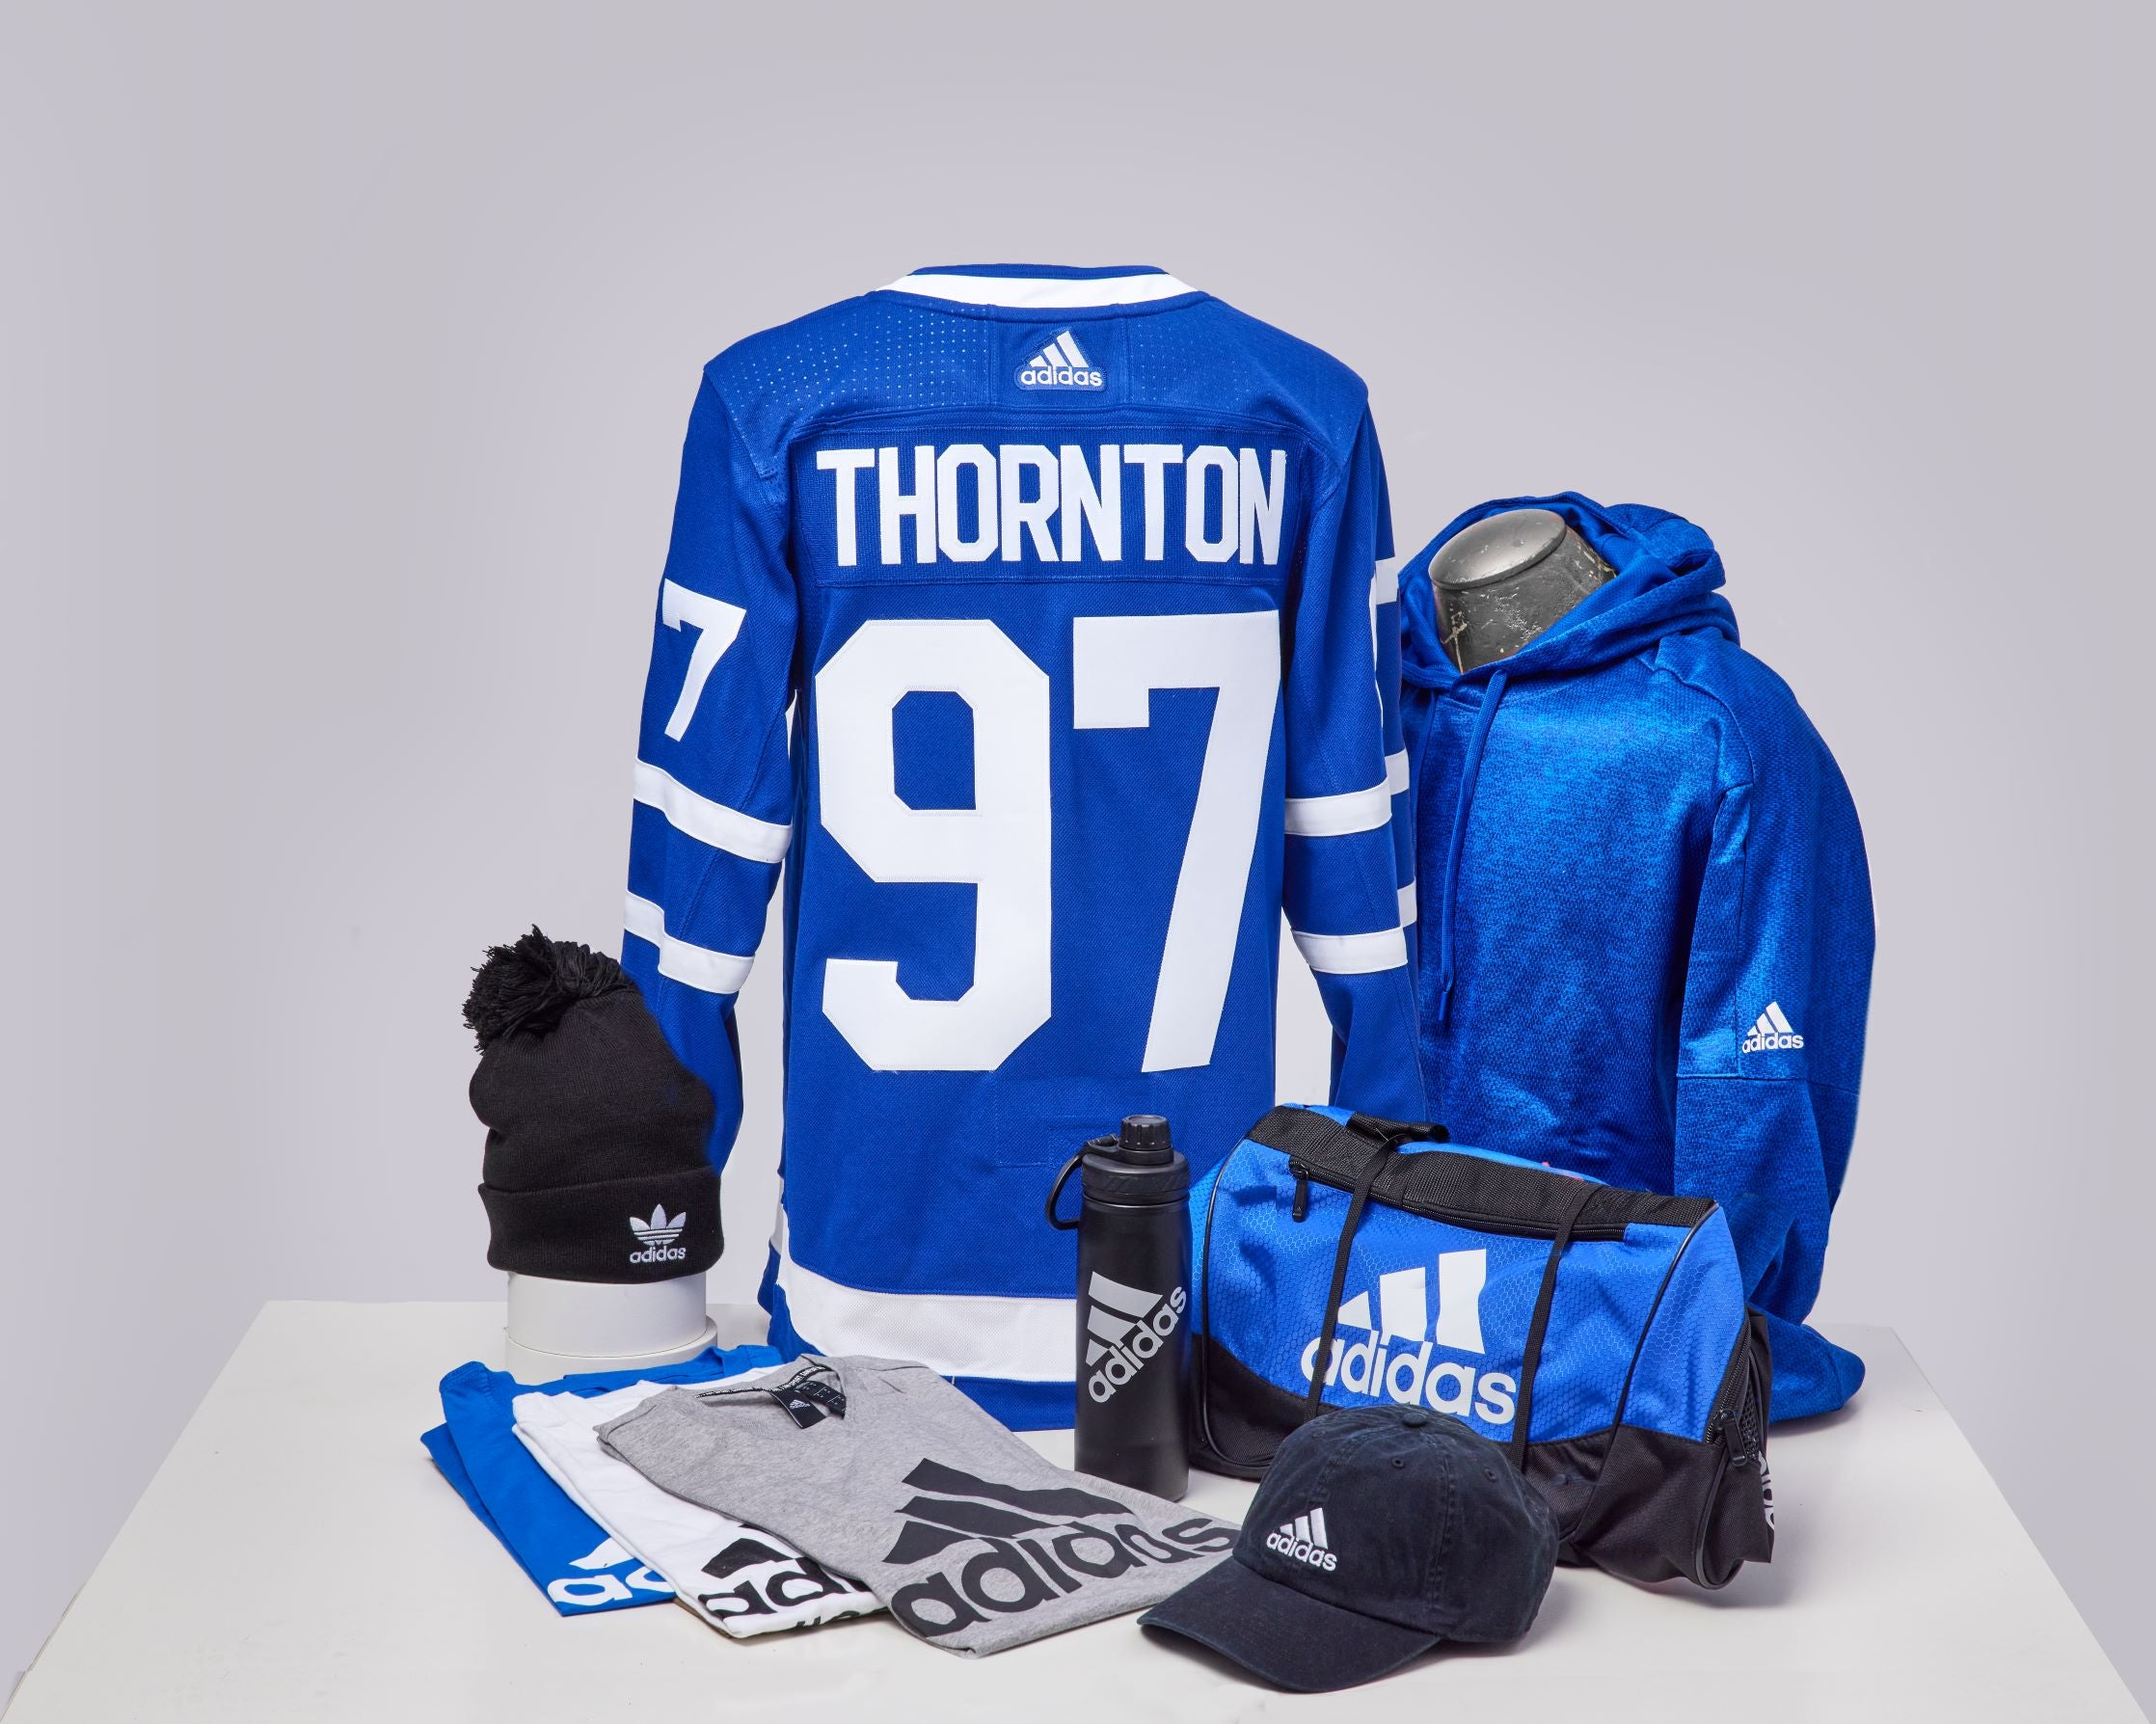 Maple Leafs Adidas Authentic Men's Home Jersey + Adidas Pack - THORNTON